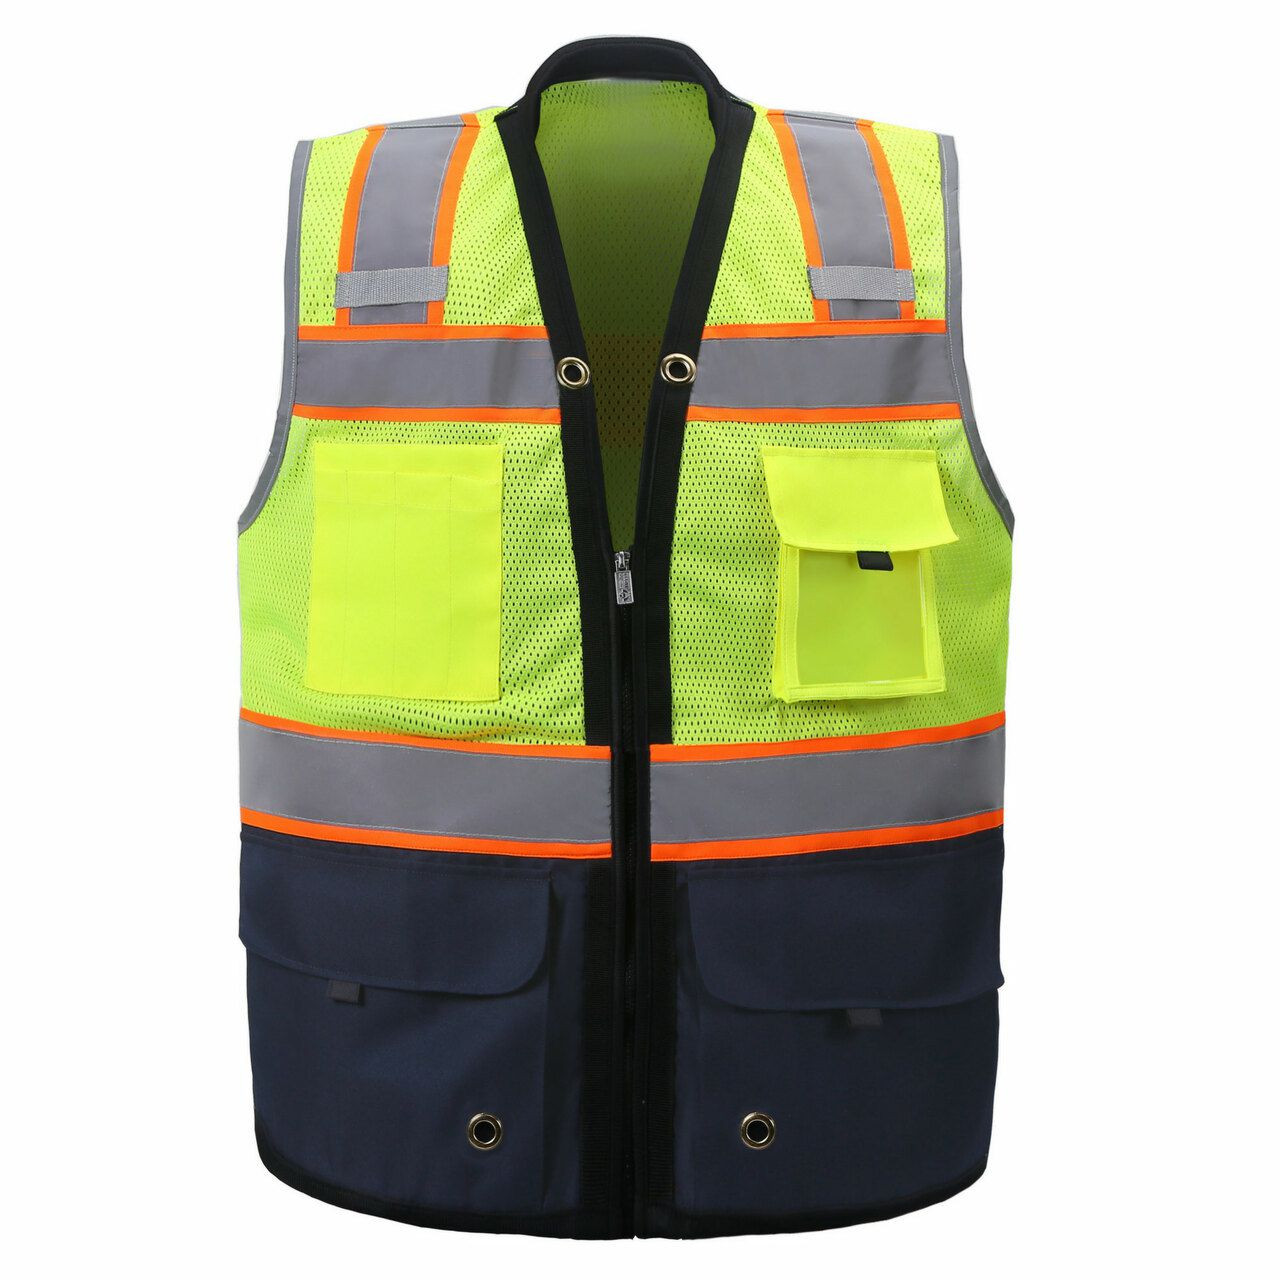 Two Tone Class 2 Premium Surveyors Safety Vest with Navy Solid Bottom